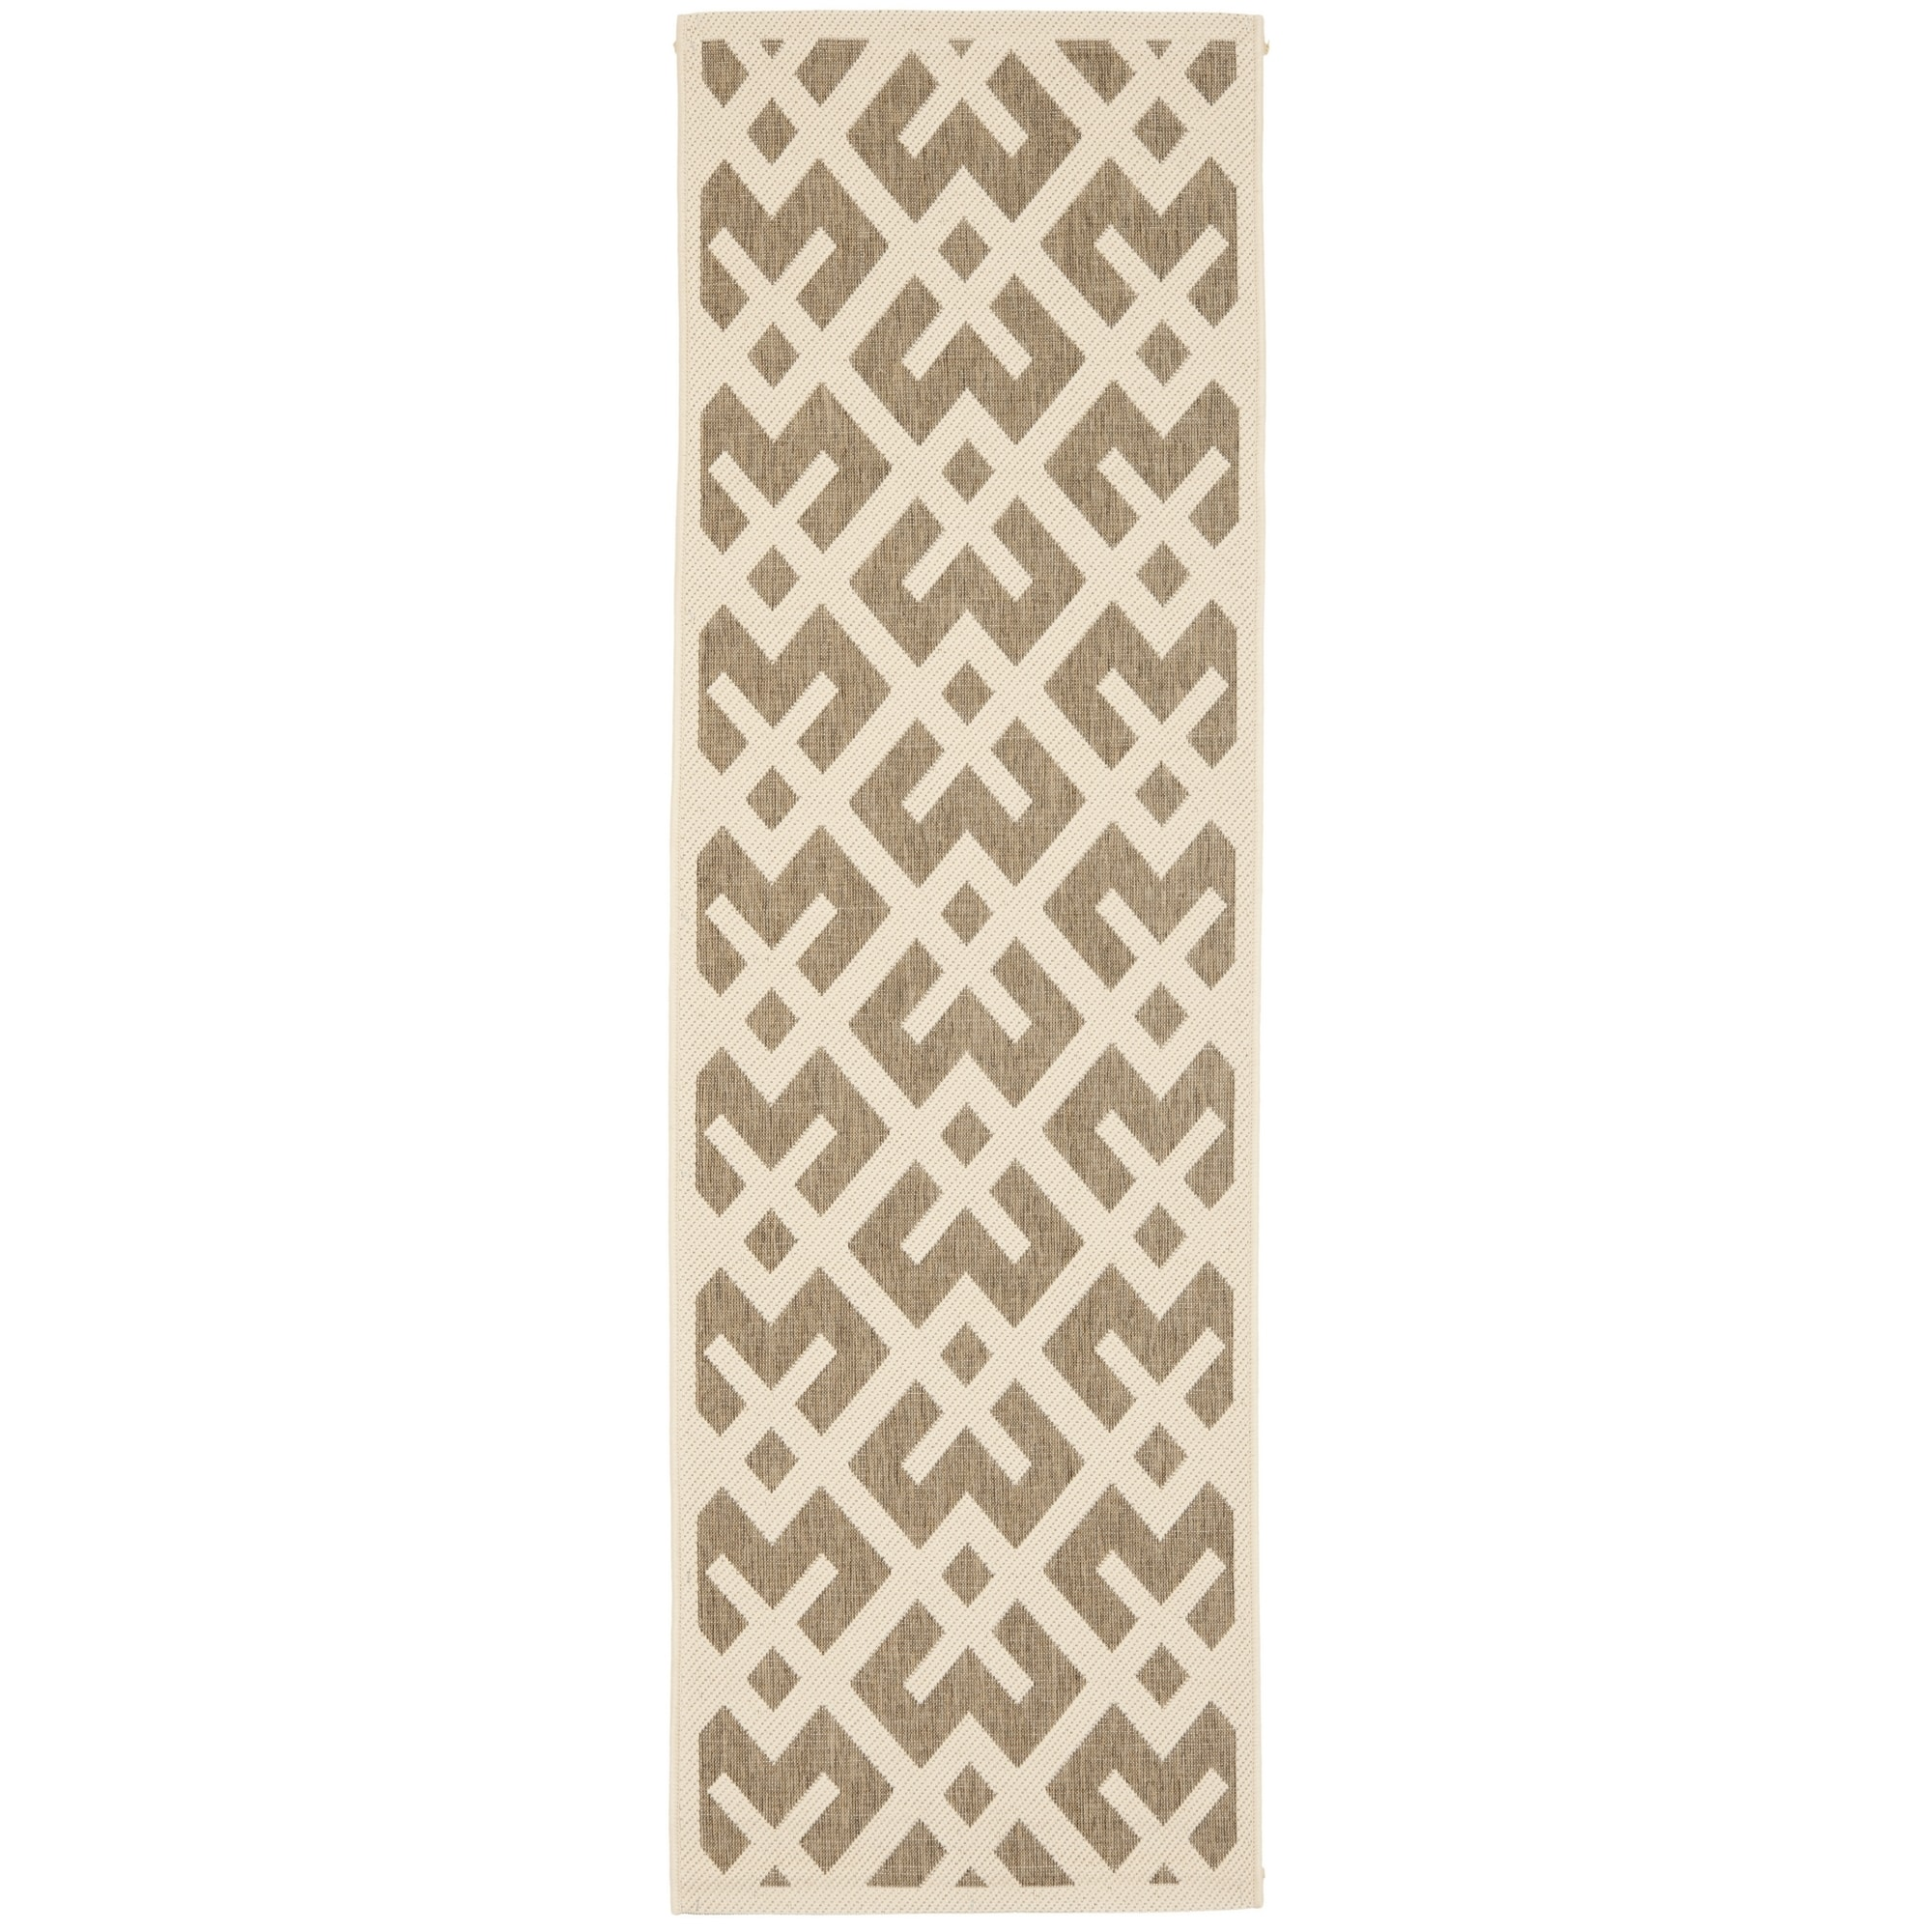 Safavieh Indoor/ Outdoor Courtyard Brown/ Bone Rug (24 X 12)